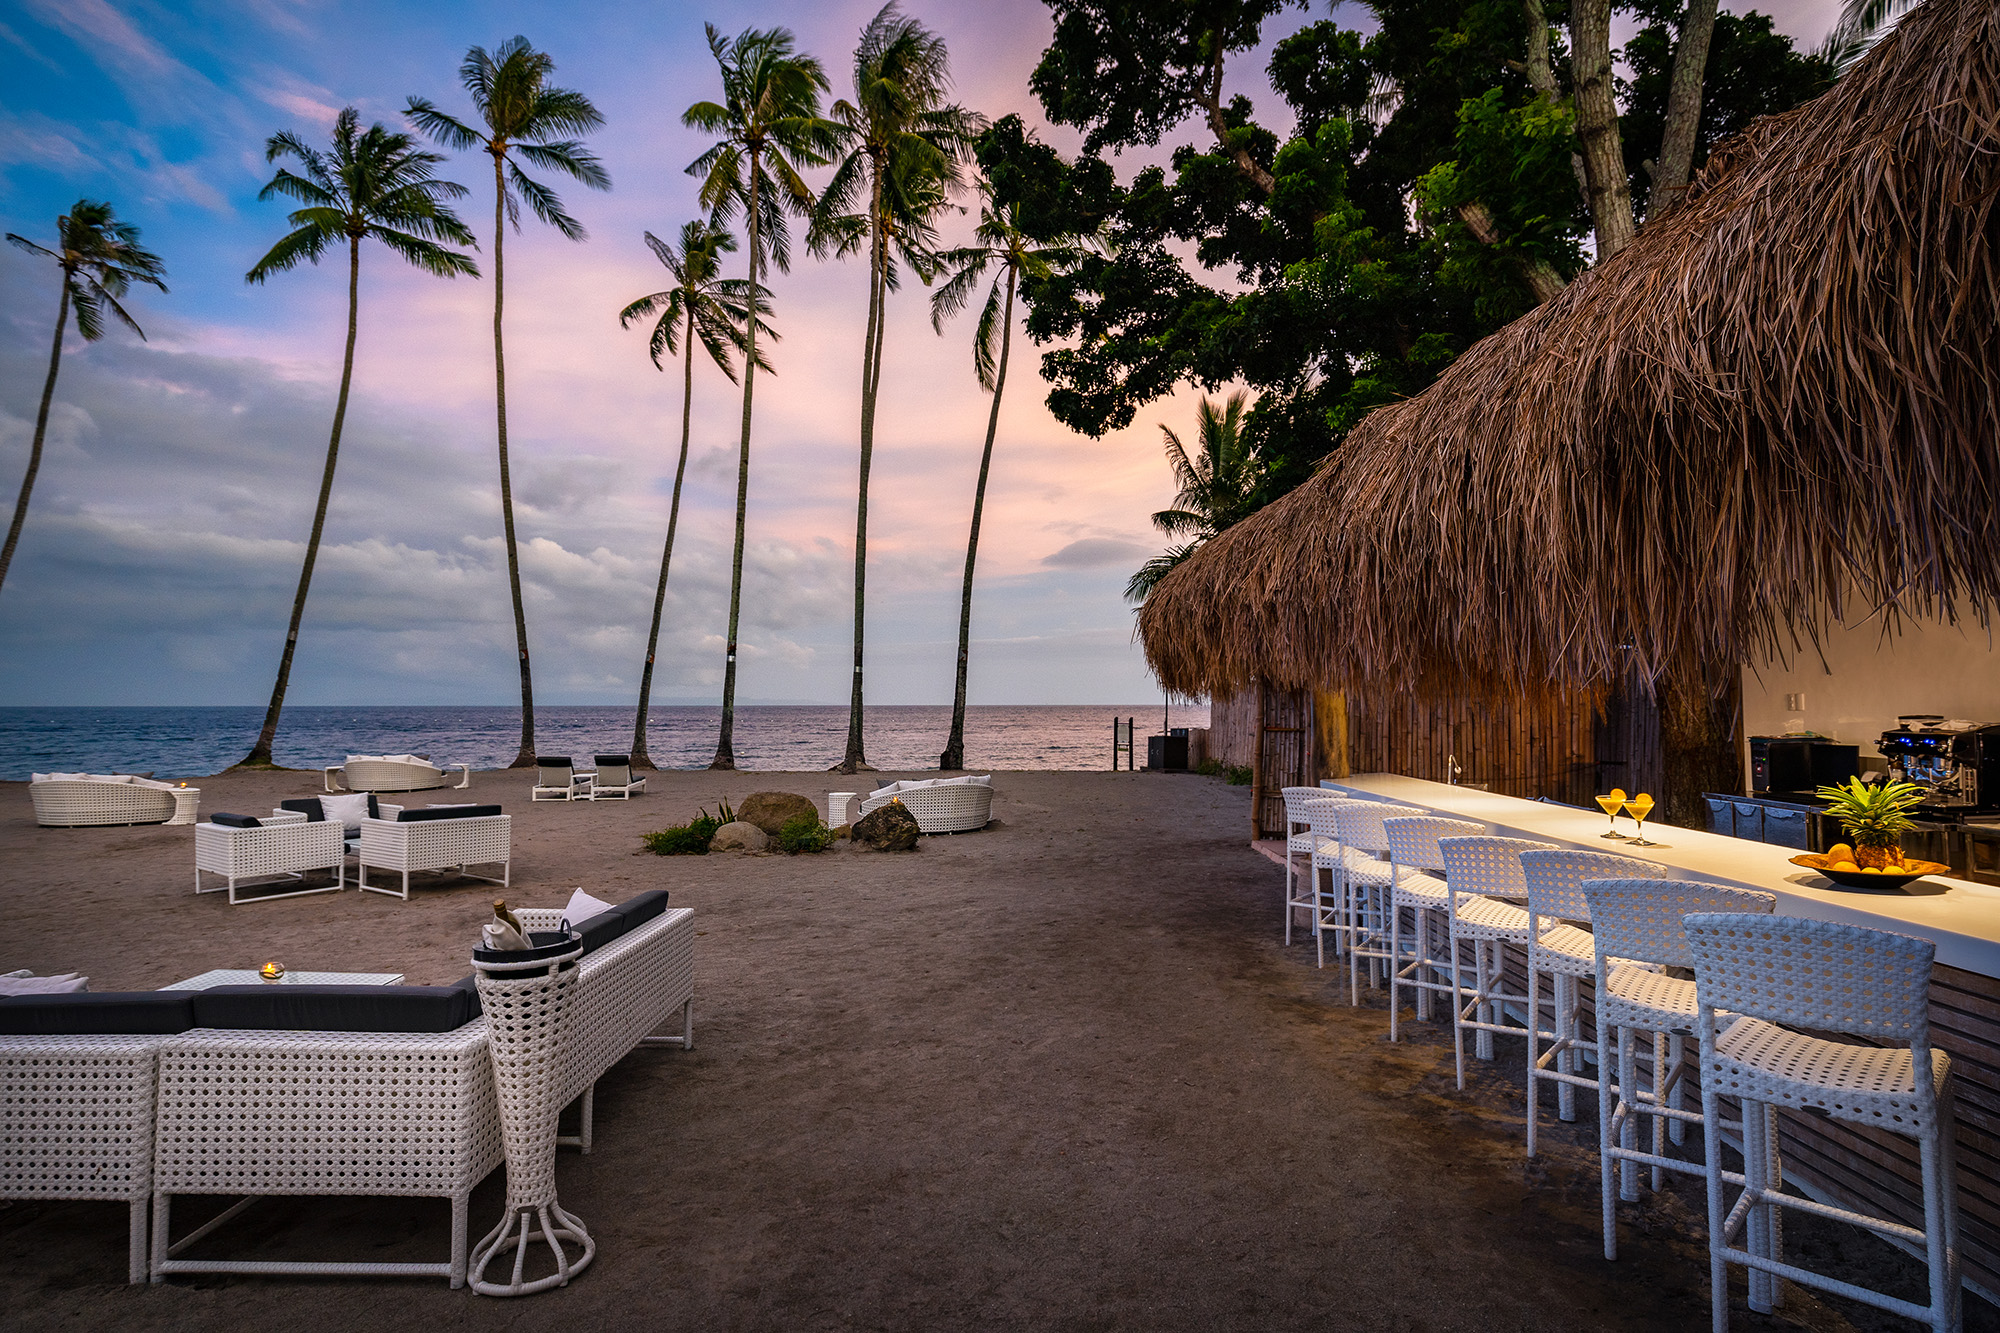 The Beach Bar at Atmosphere Resort, Philippines, overlooks the beach and ocean